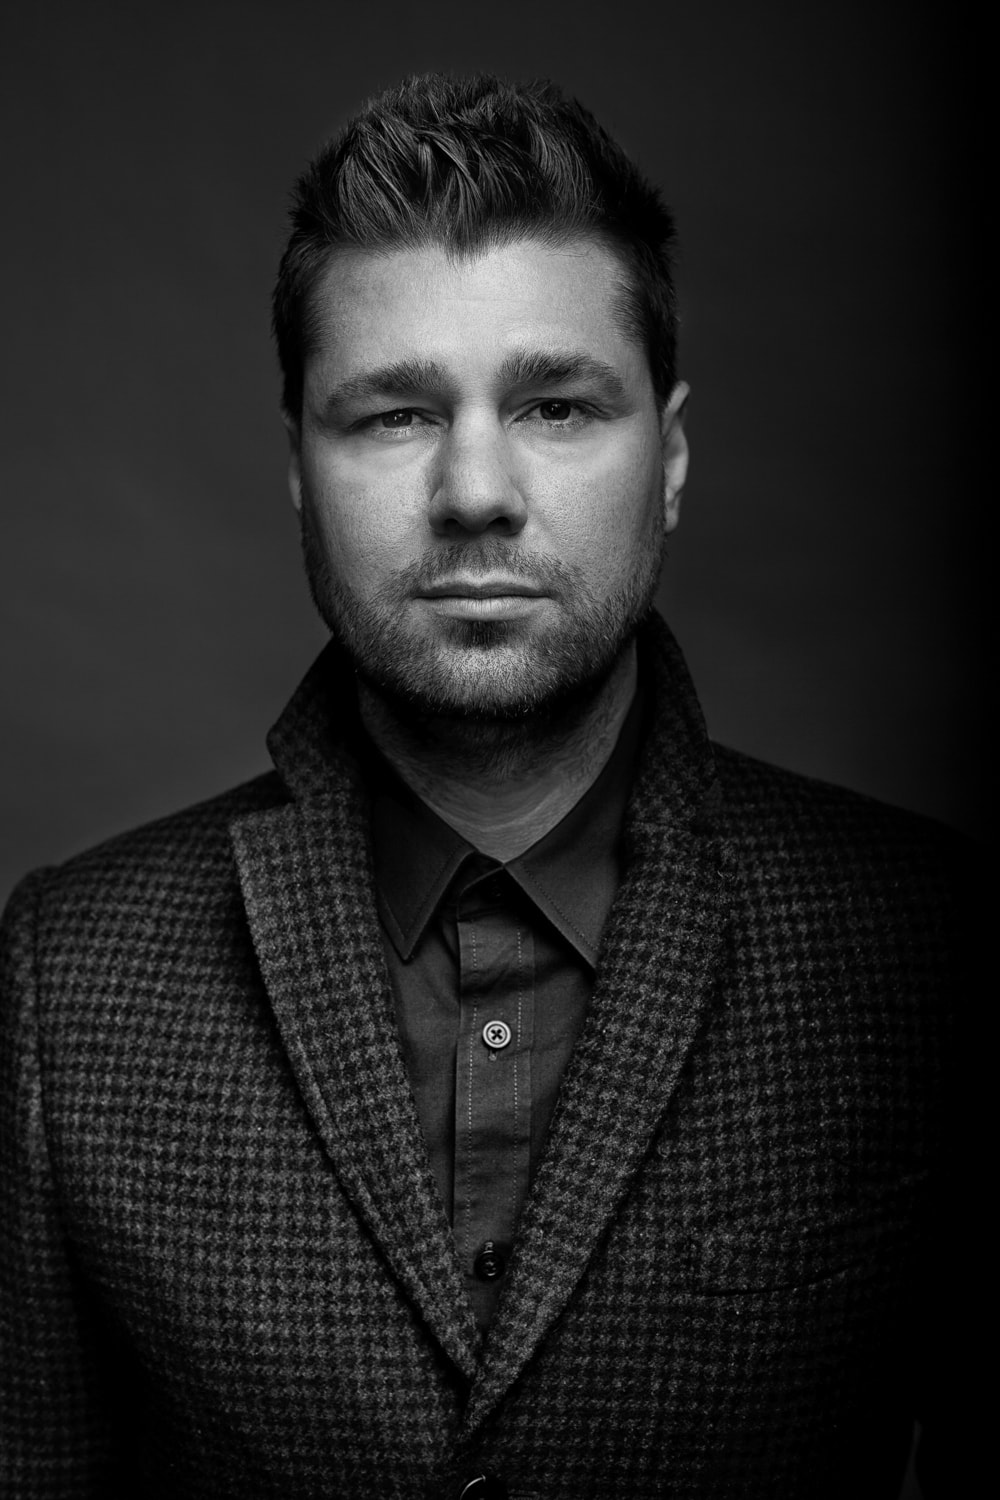 Headshot Photography of Male Client in Black & White Taken By the Professional Headshot Photographers at Harper Point.